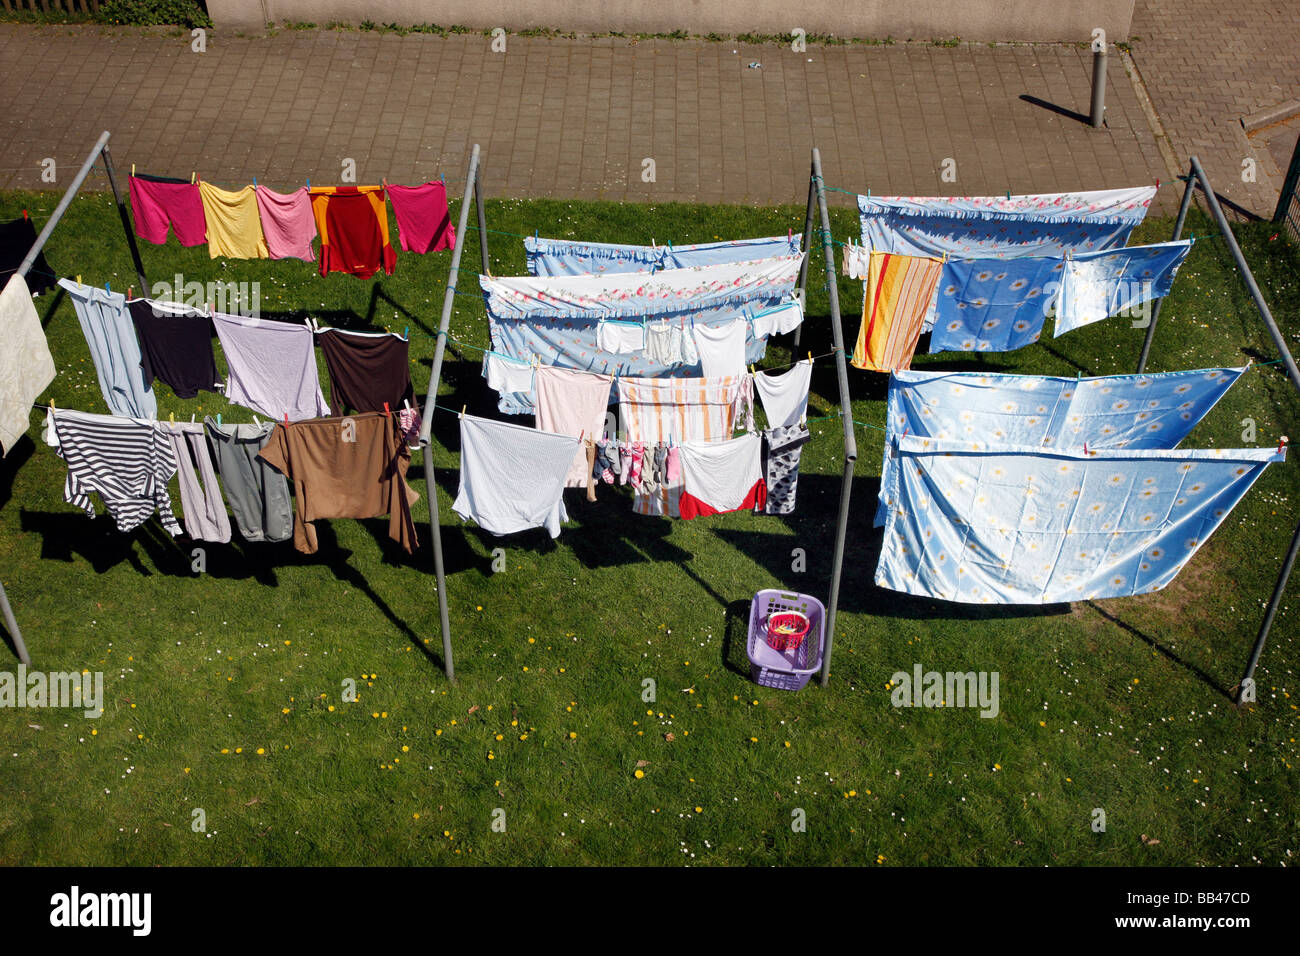 Hanging out the laundry for drying in a garden, Gelsenkirchen, Germany - Stock Image